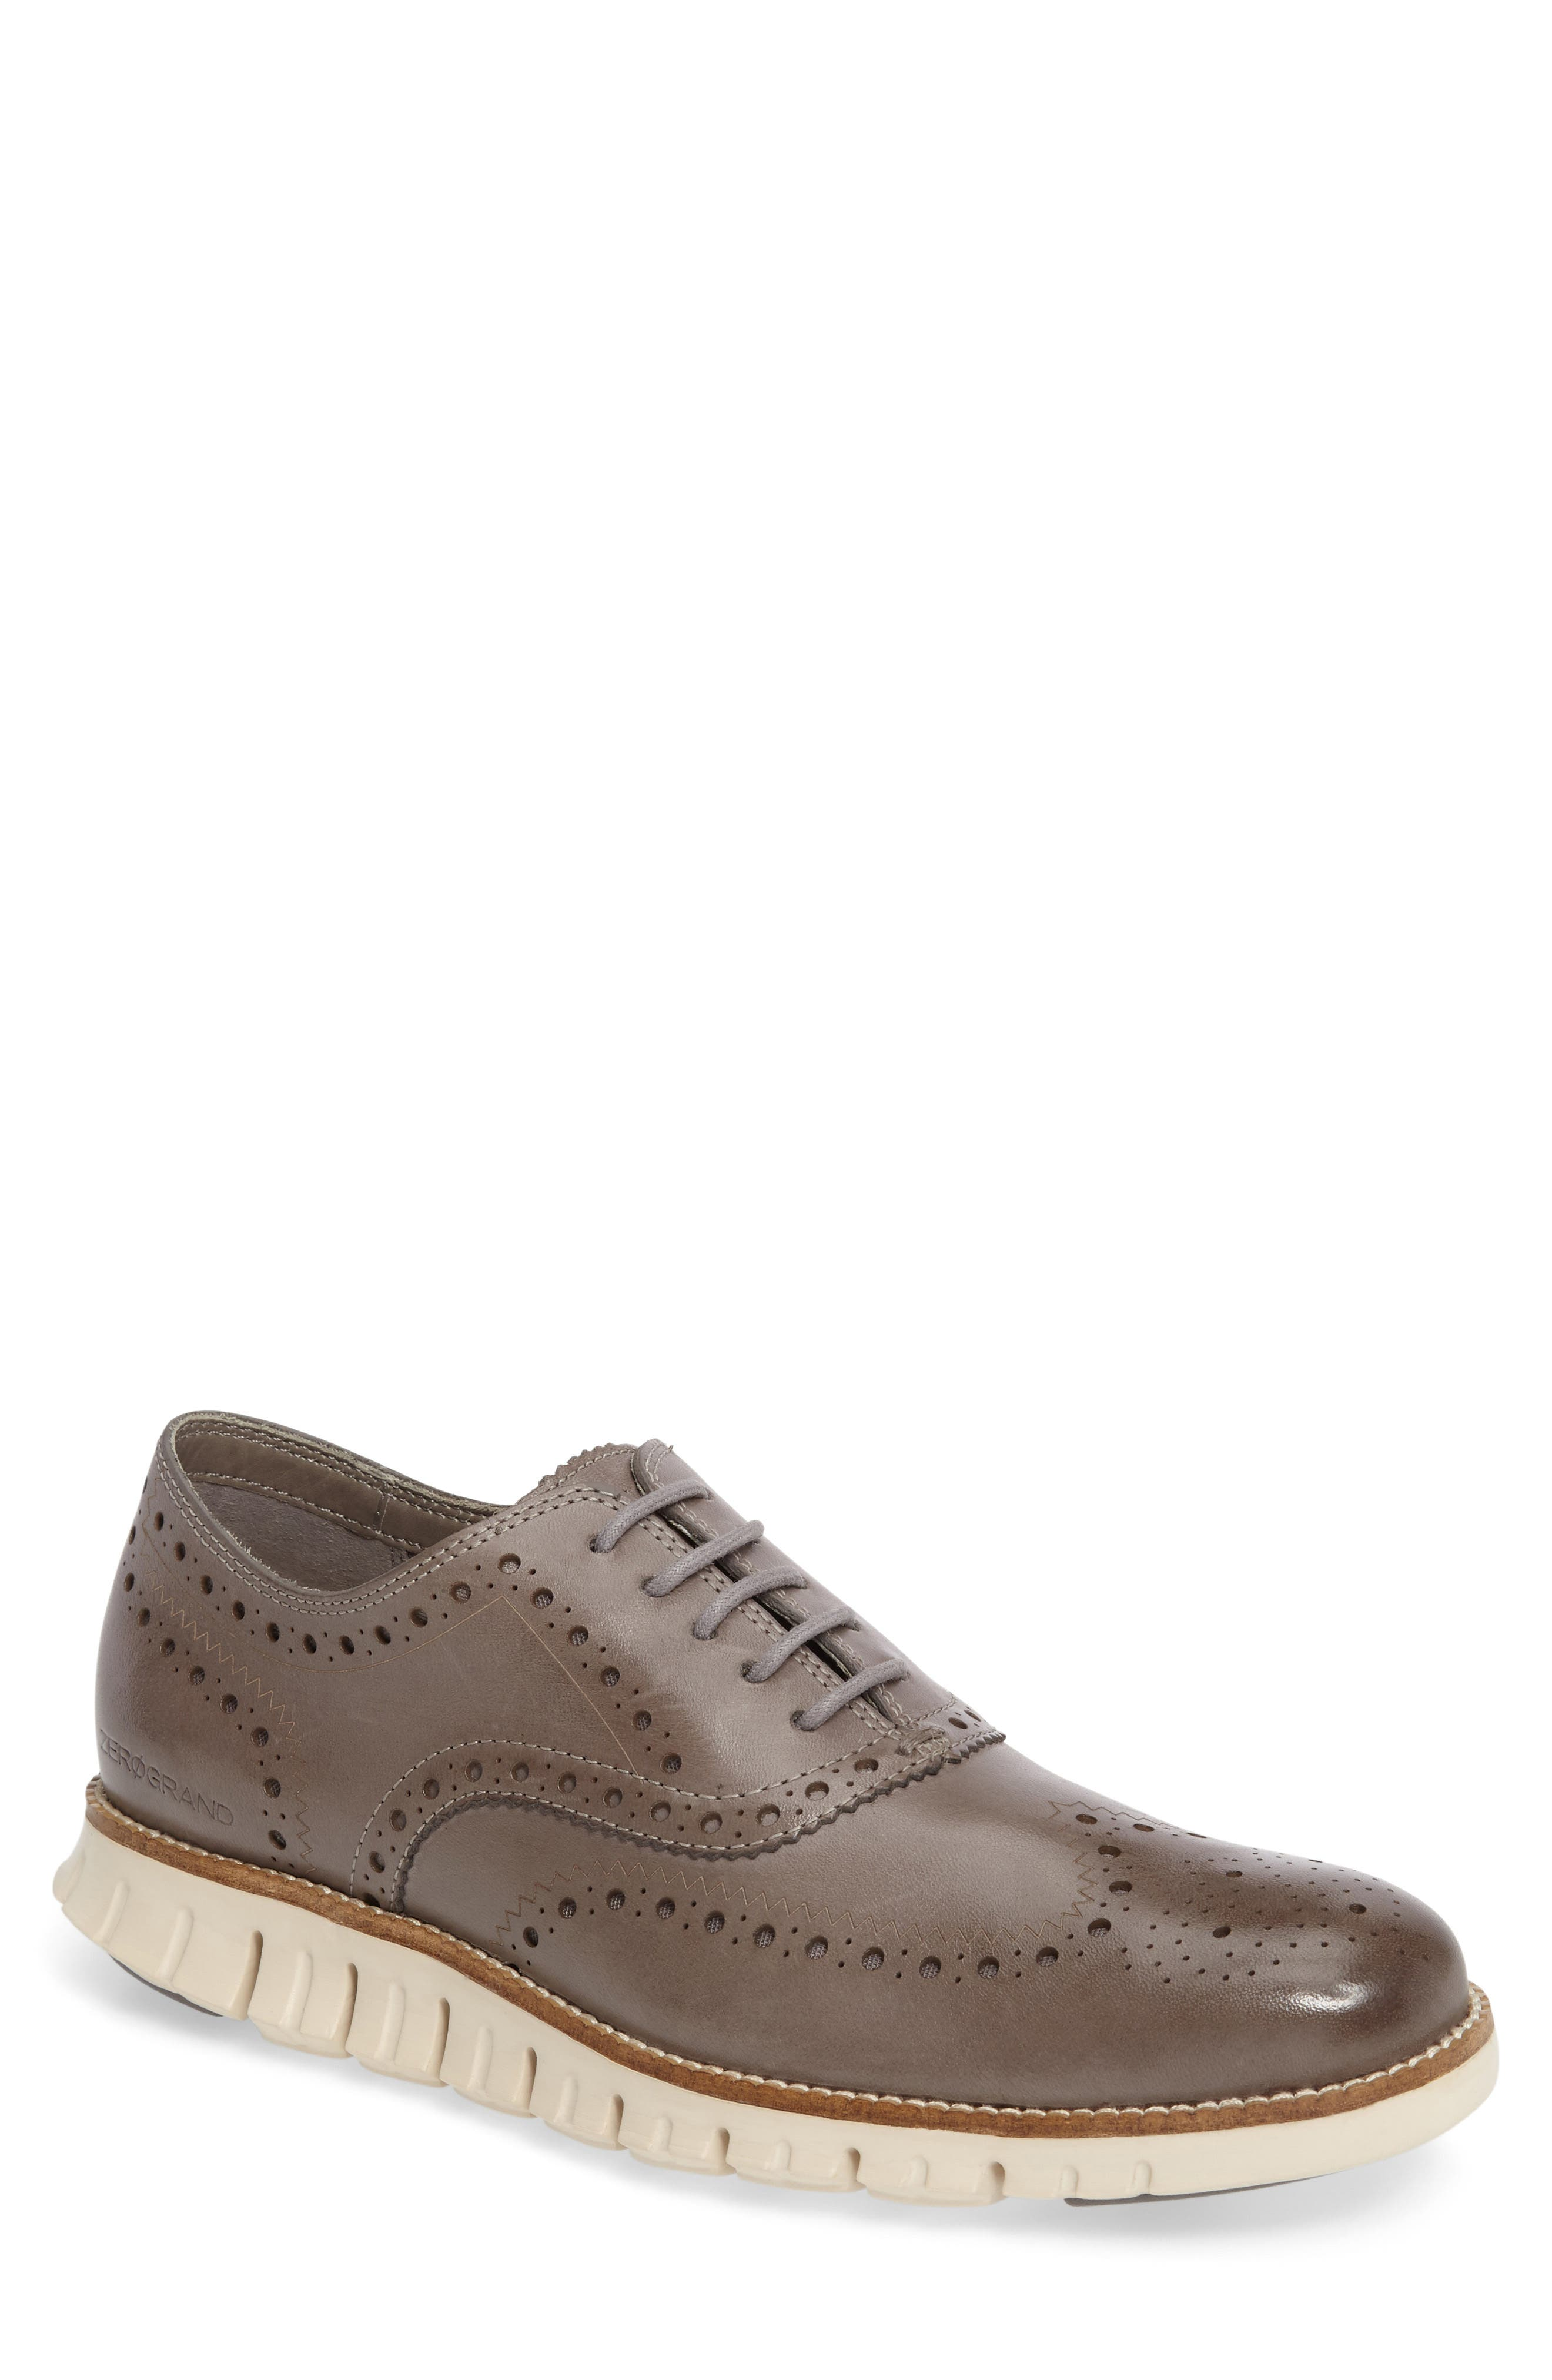 COLE HAAN 'ZeroGrand' Wingtip Oxford, Main, color, IRONSTONE LEATHER